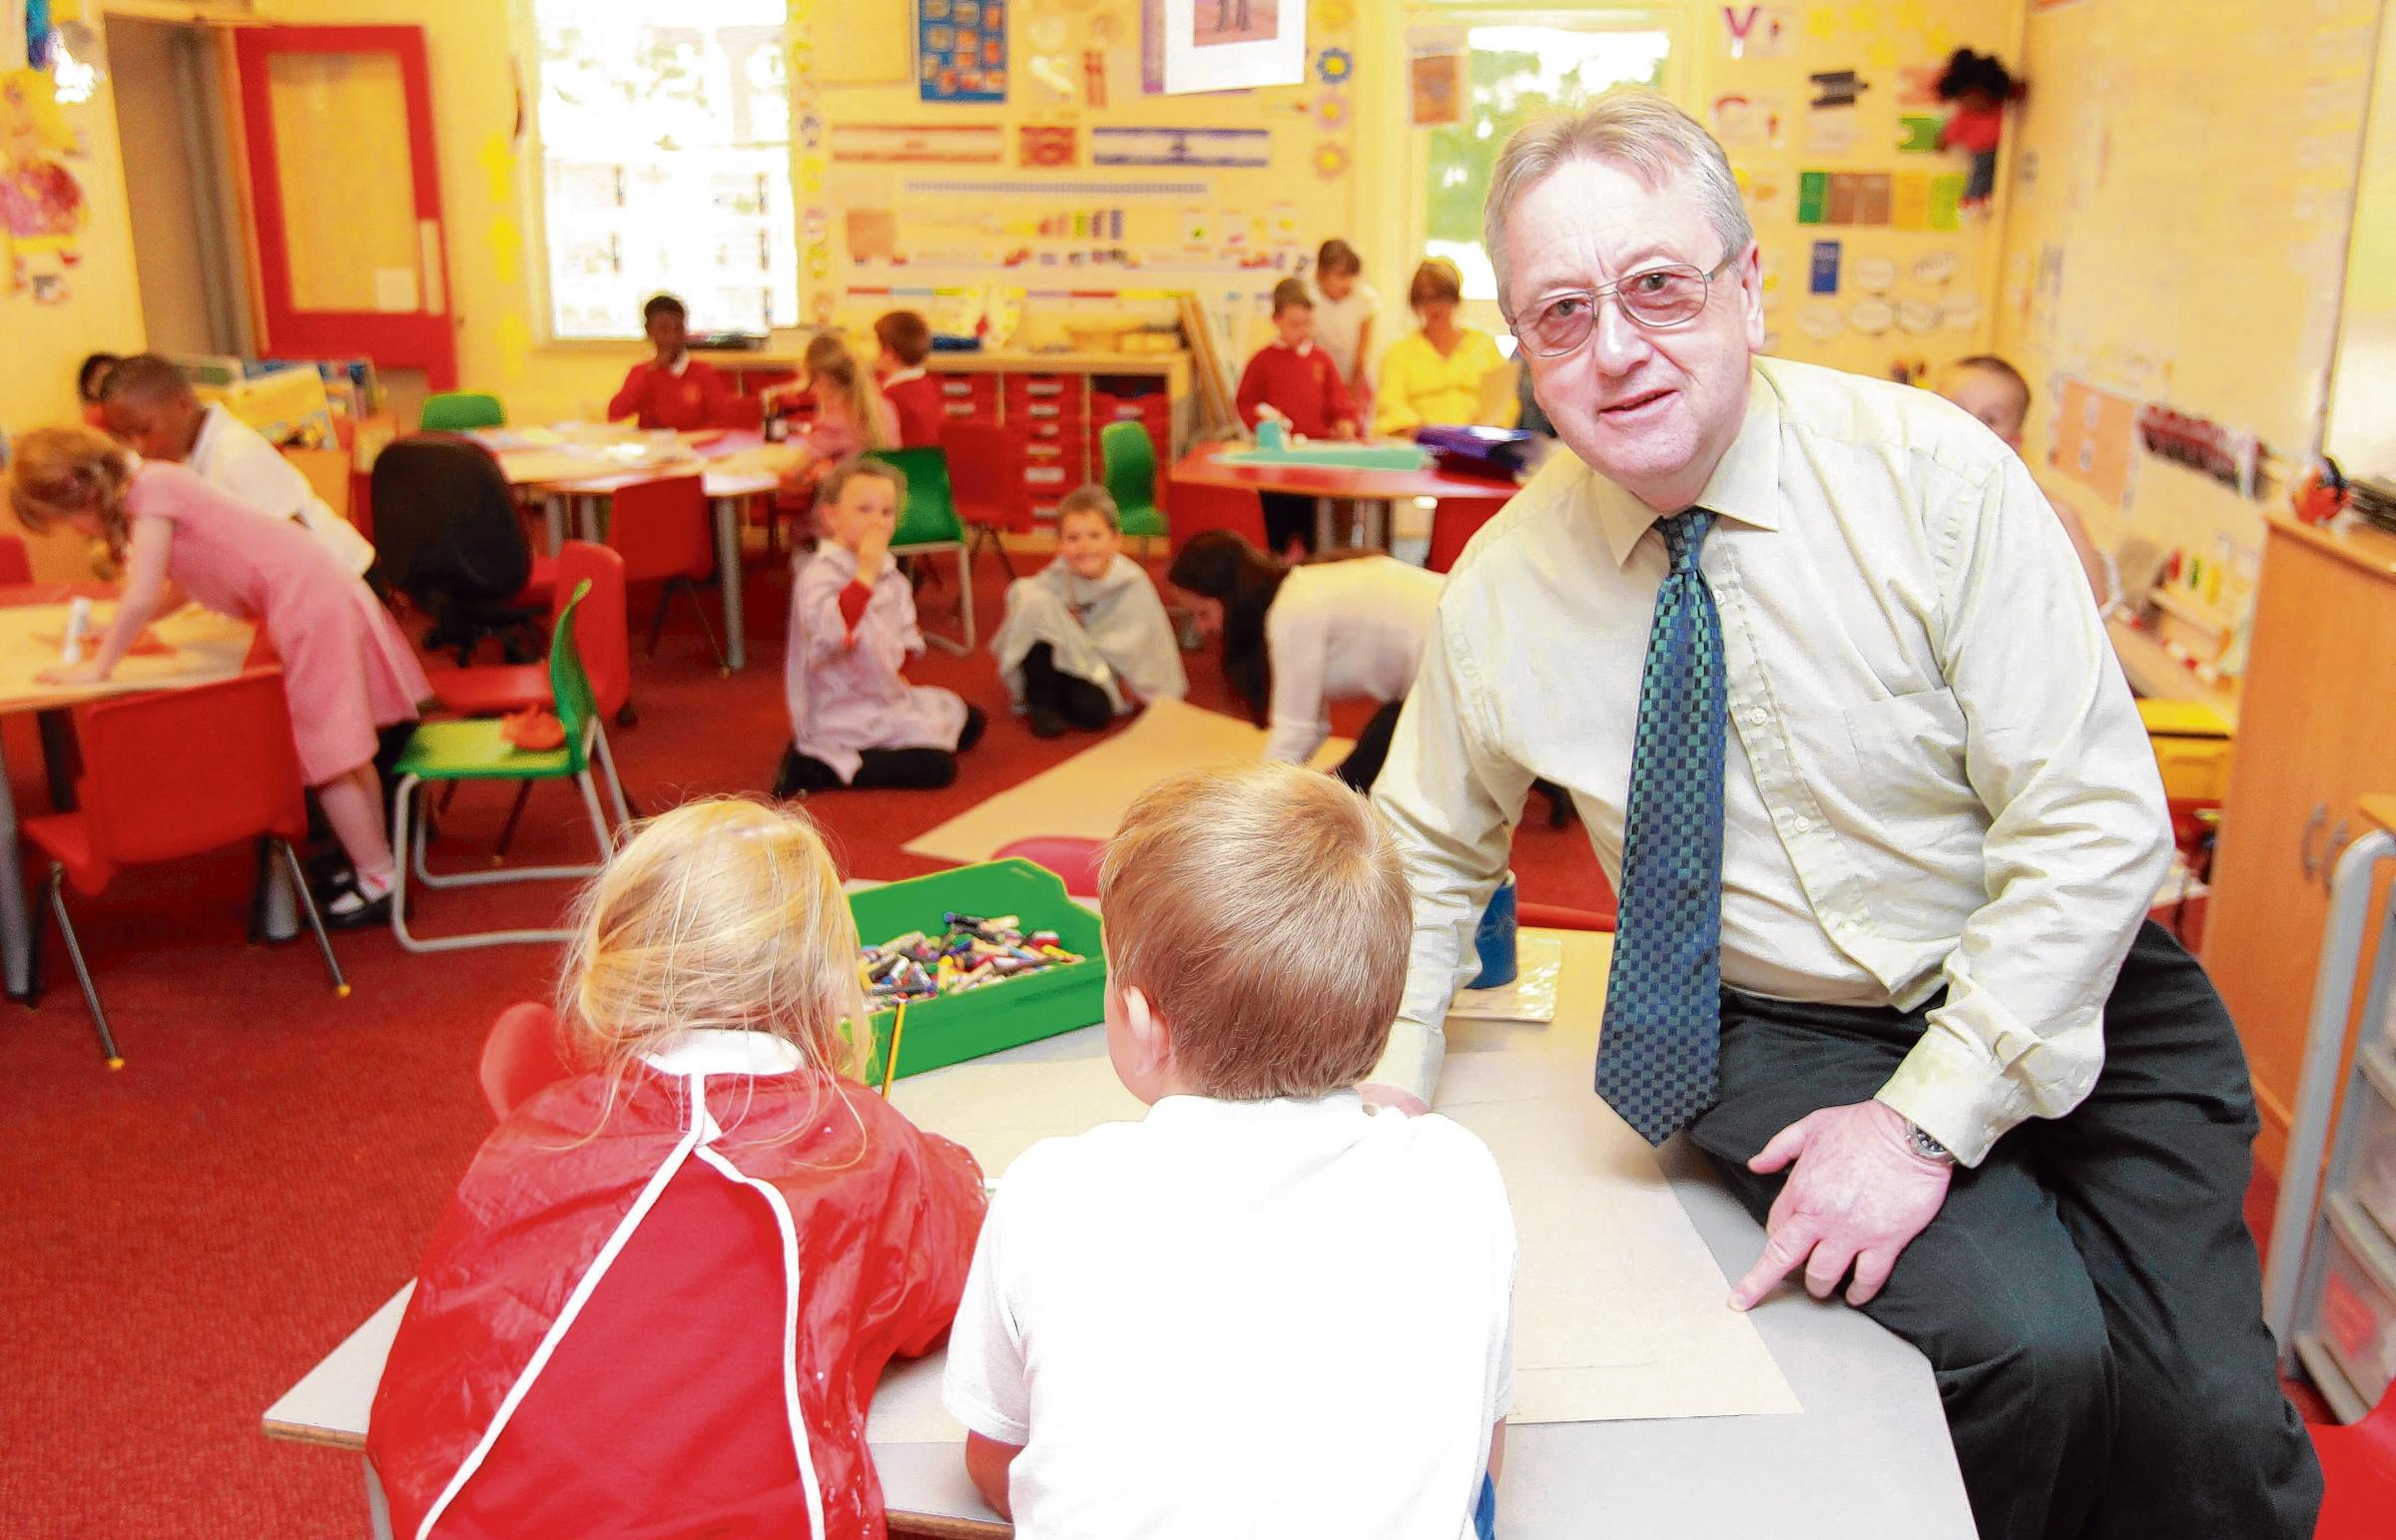 Iain Birtwell is the school's new executive headteacher